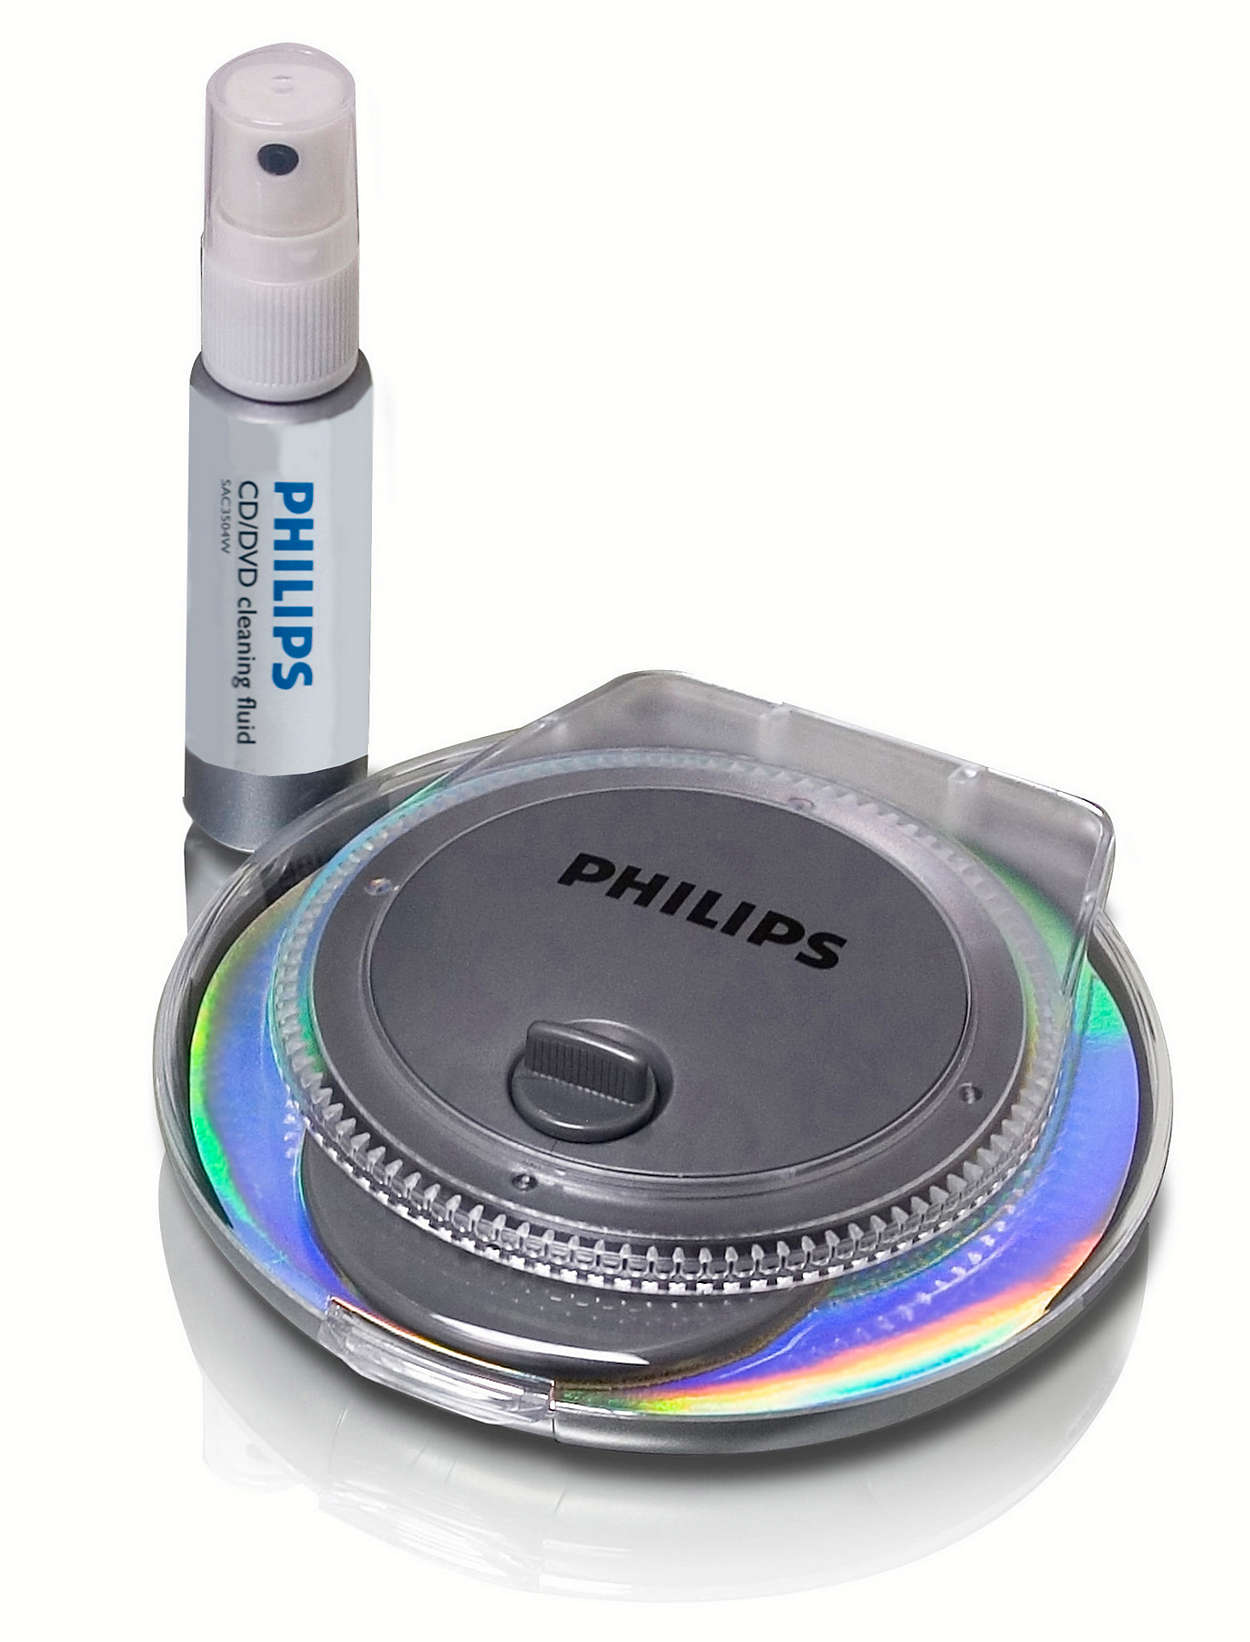 Radial CD/DVD cleaner